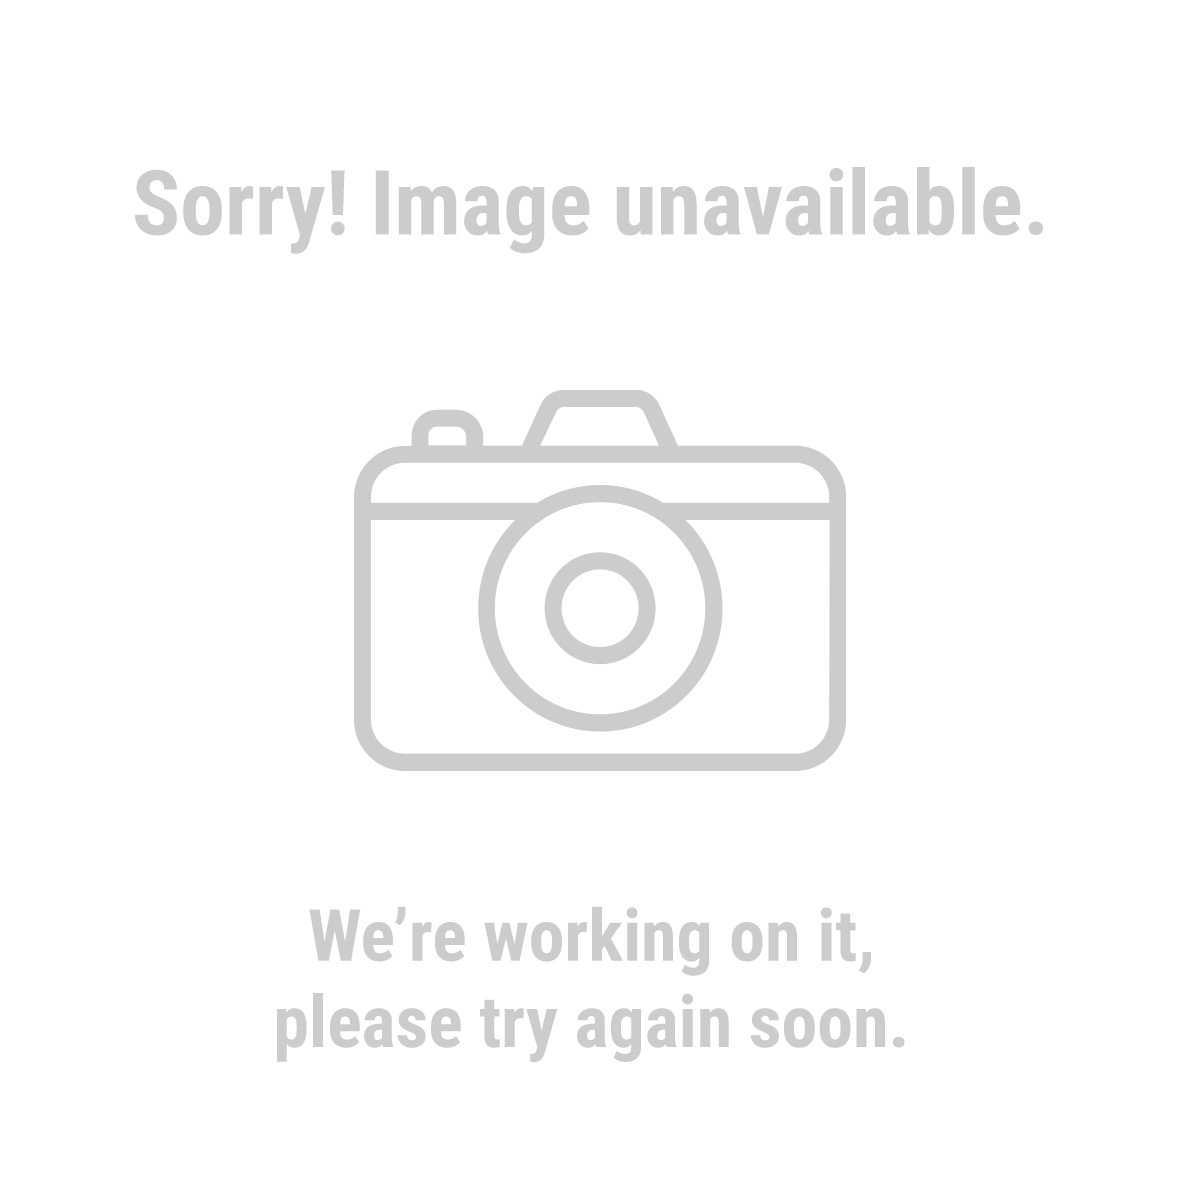 Pittsburgh® 60826 6 Piece Precision Pliers Set